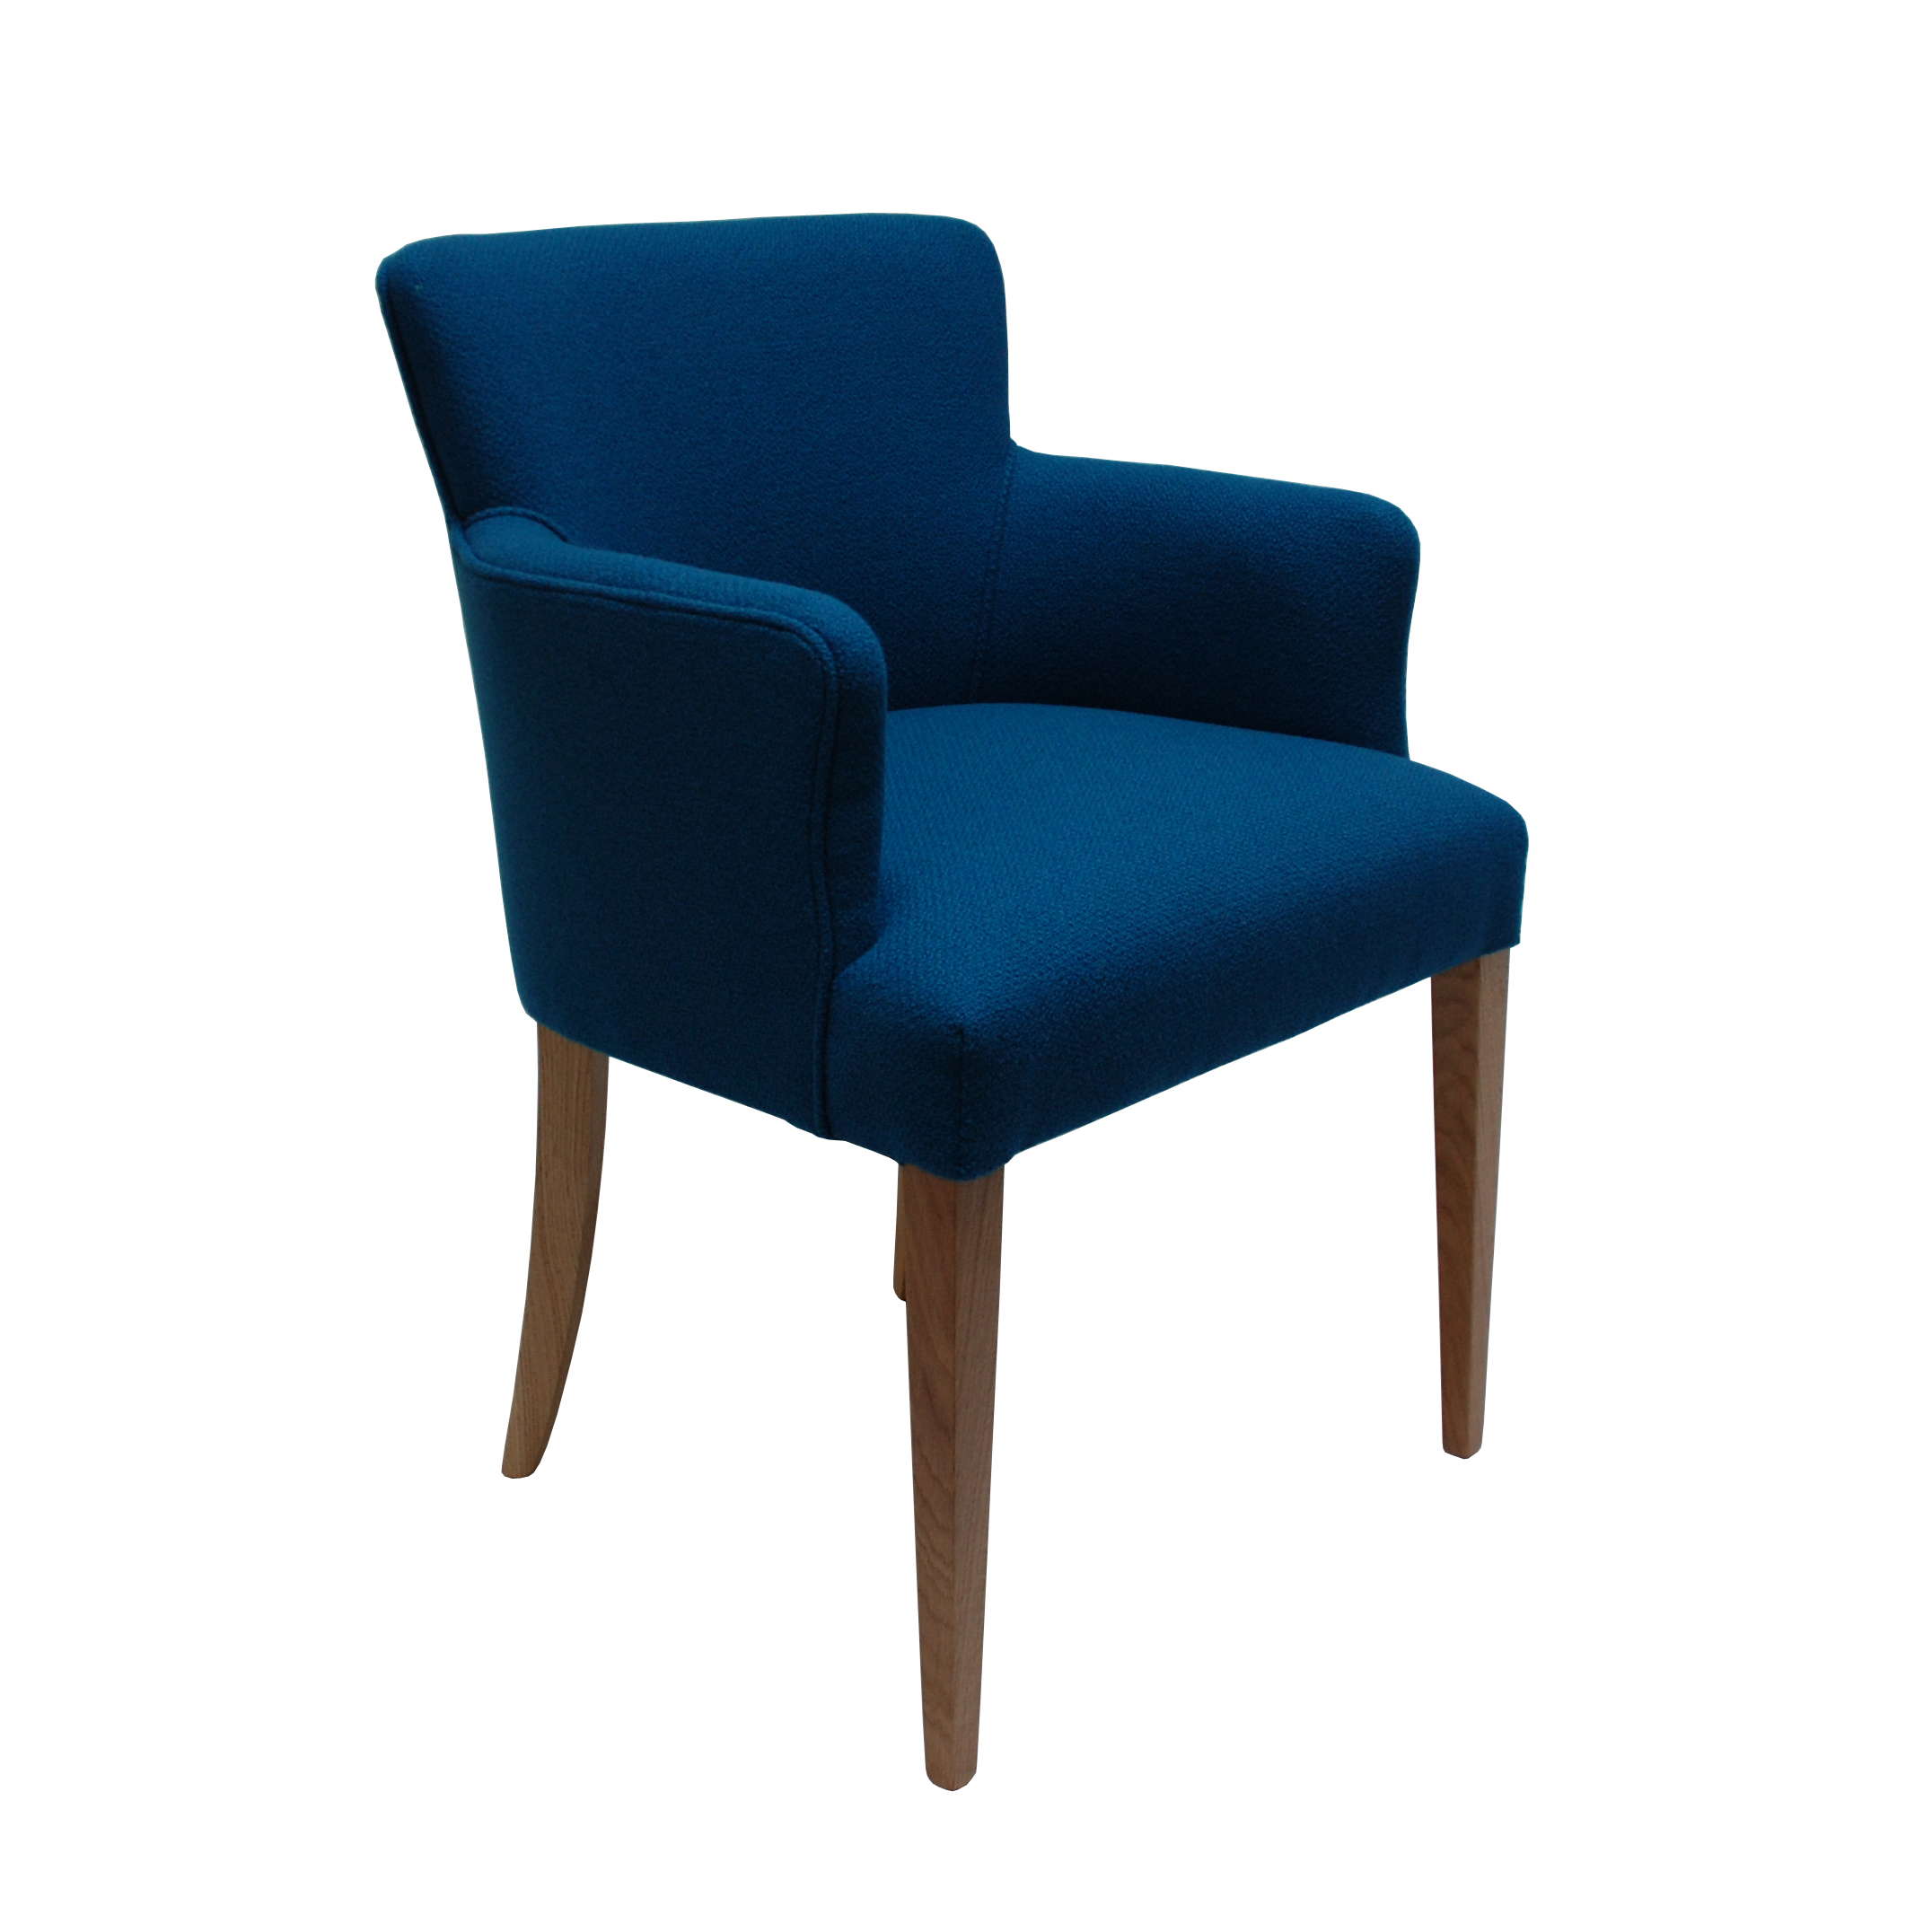 Mannings Dining Chair Handmade In Uk Chairmaker